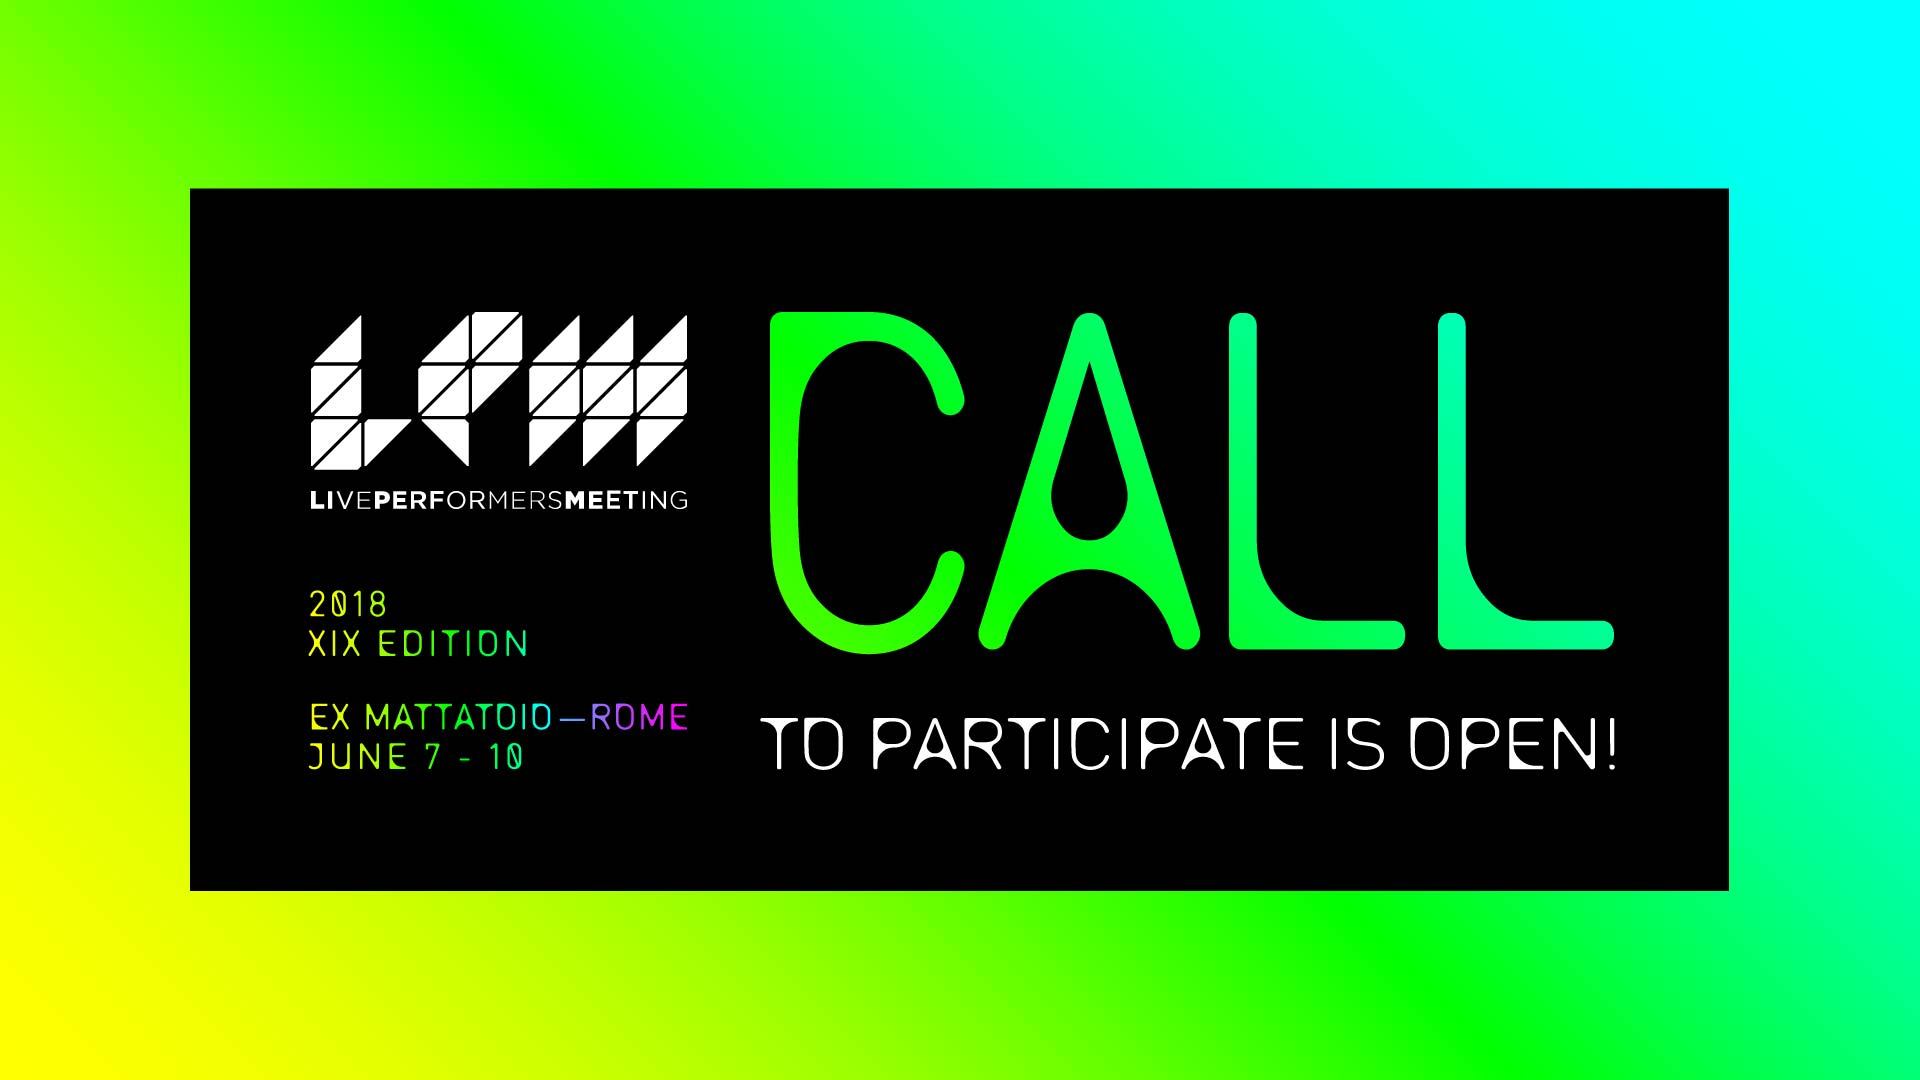 Image for: LPM 2018 Rome | CALL TO PARTICIPATE